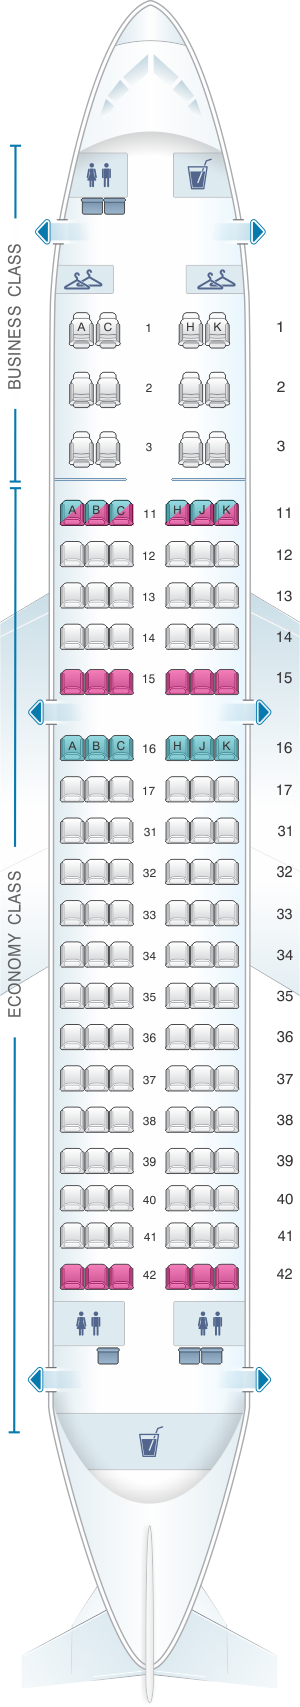 Seat map for Air Astana Airbus A319 132